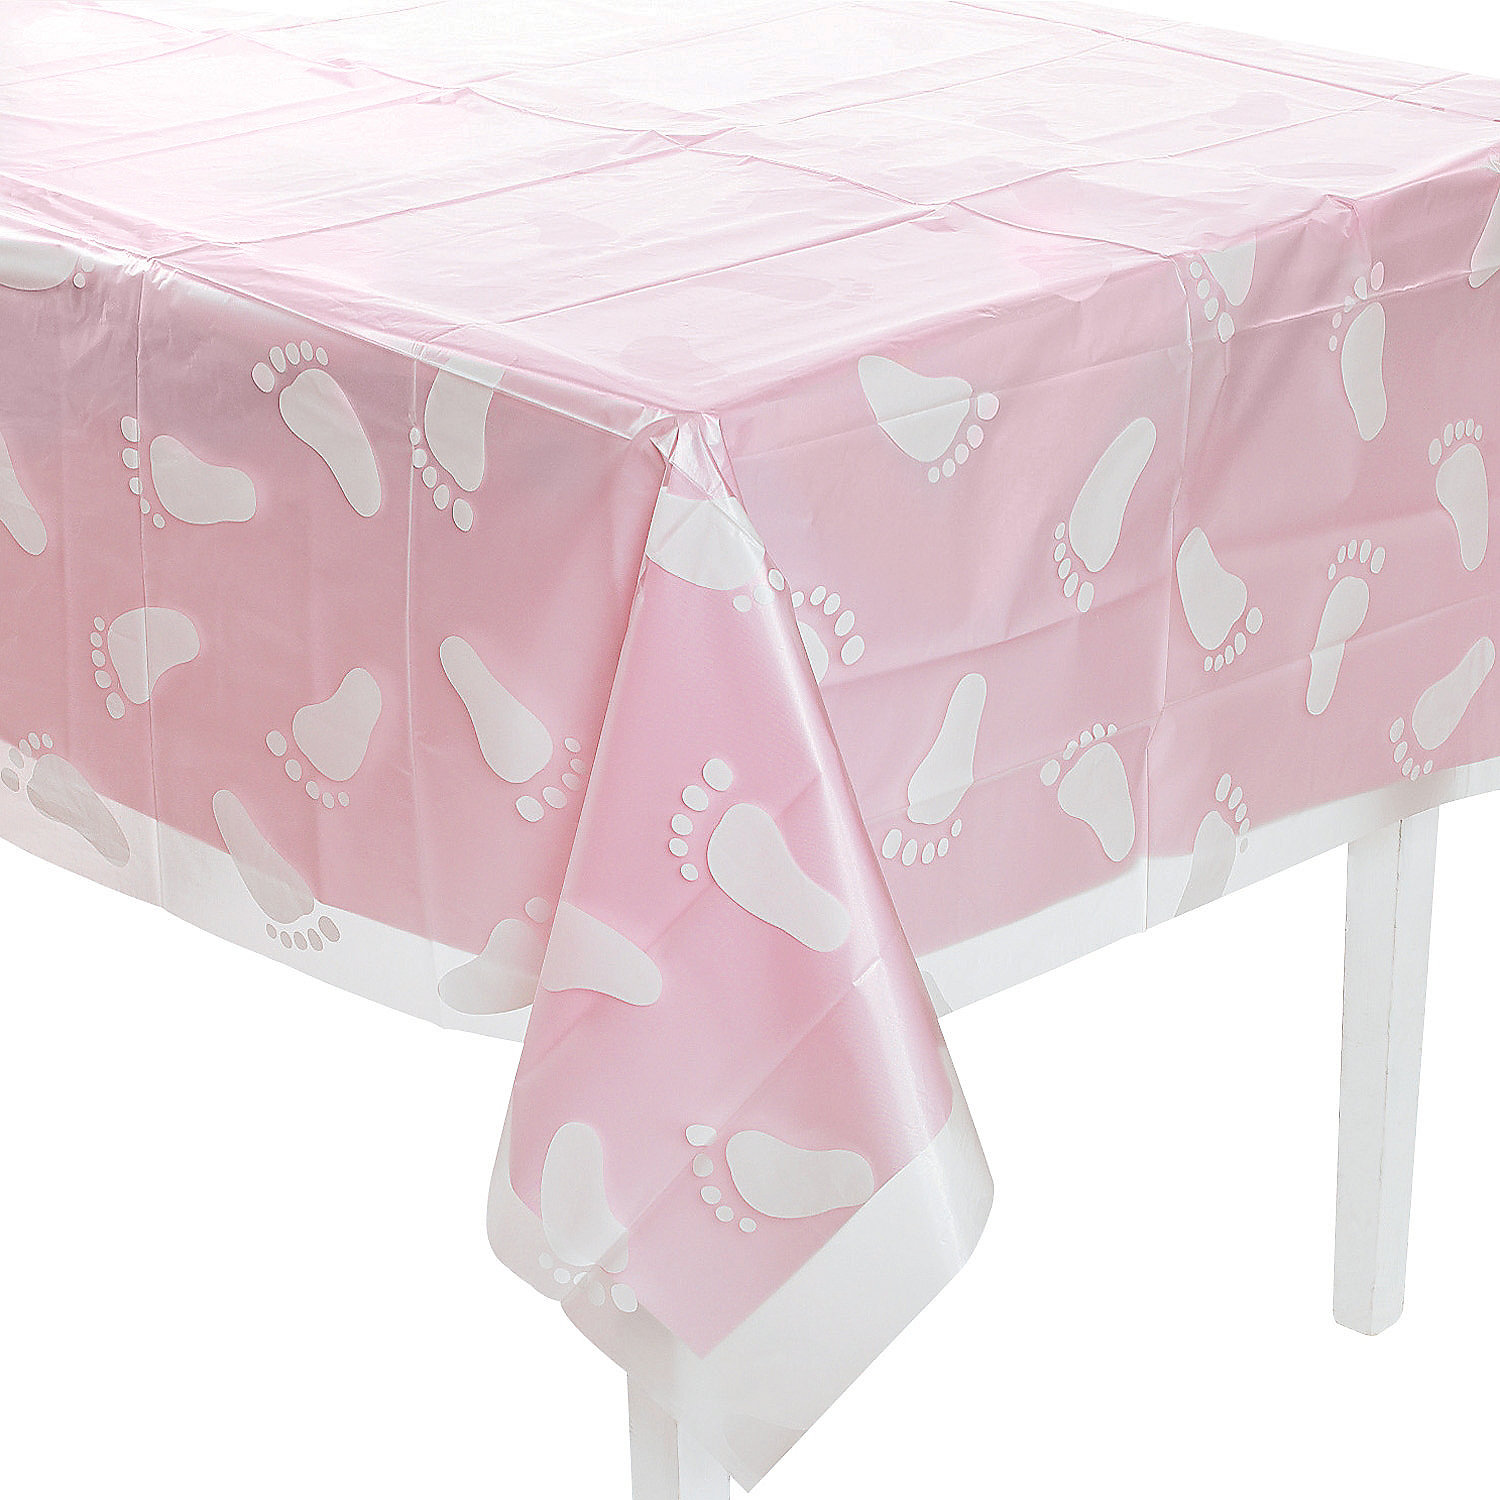 Clear Footprint Baby Shower Tablecloth Oriental Trading